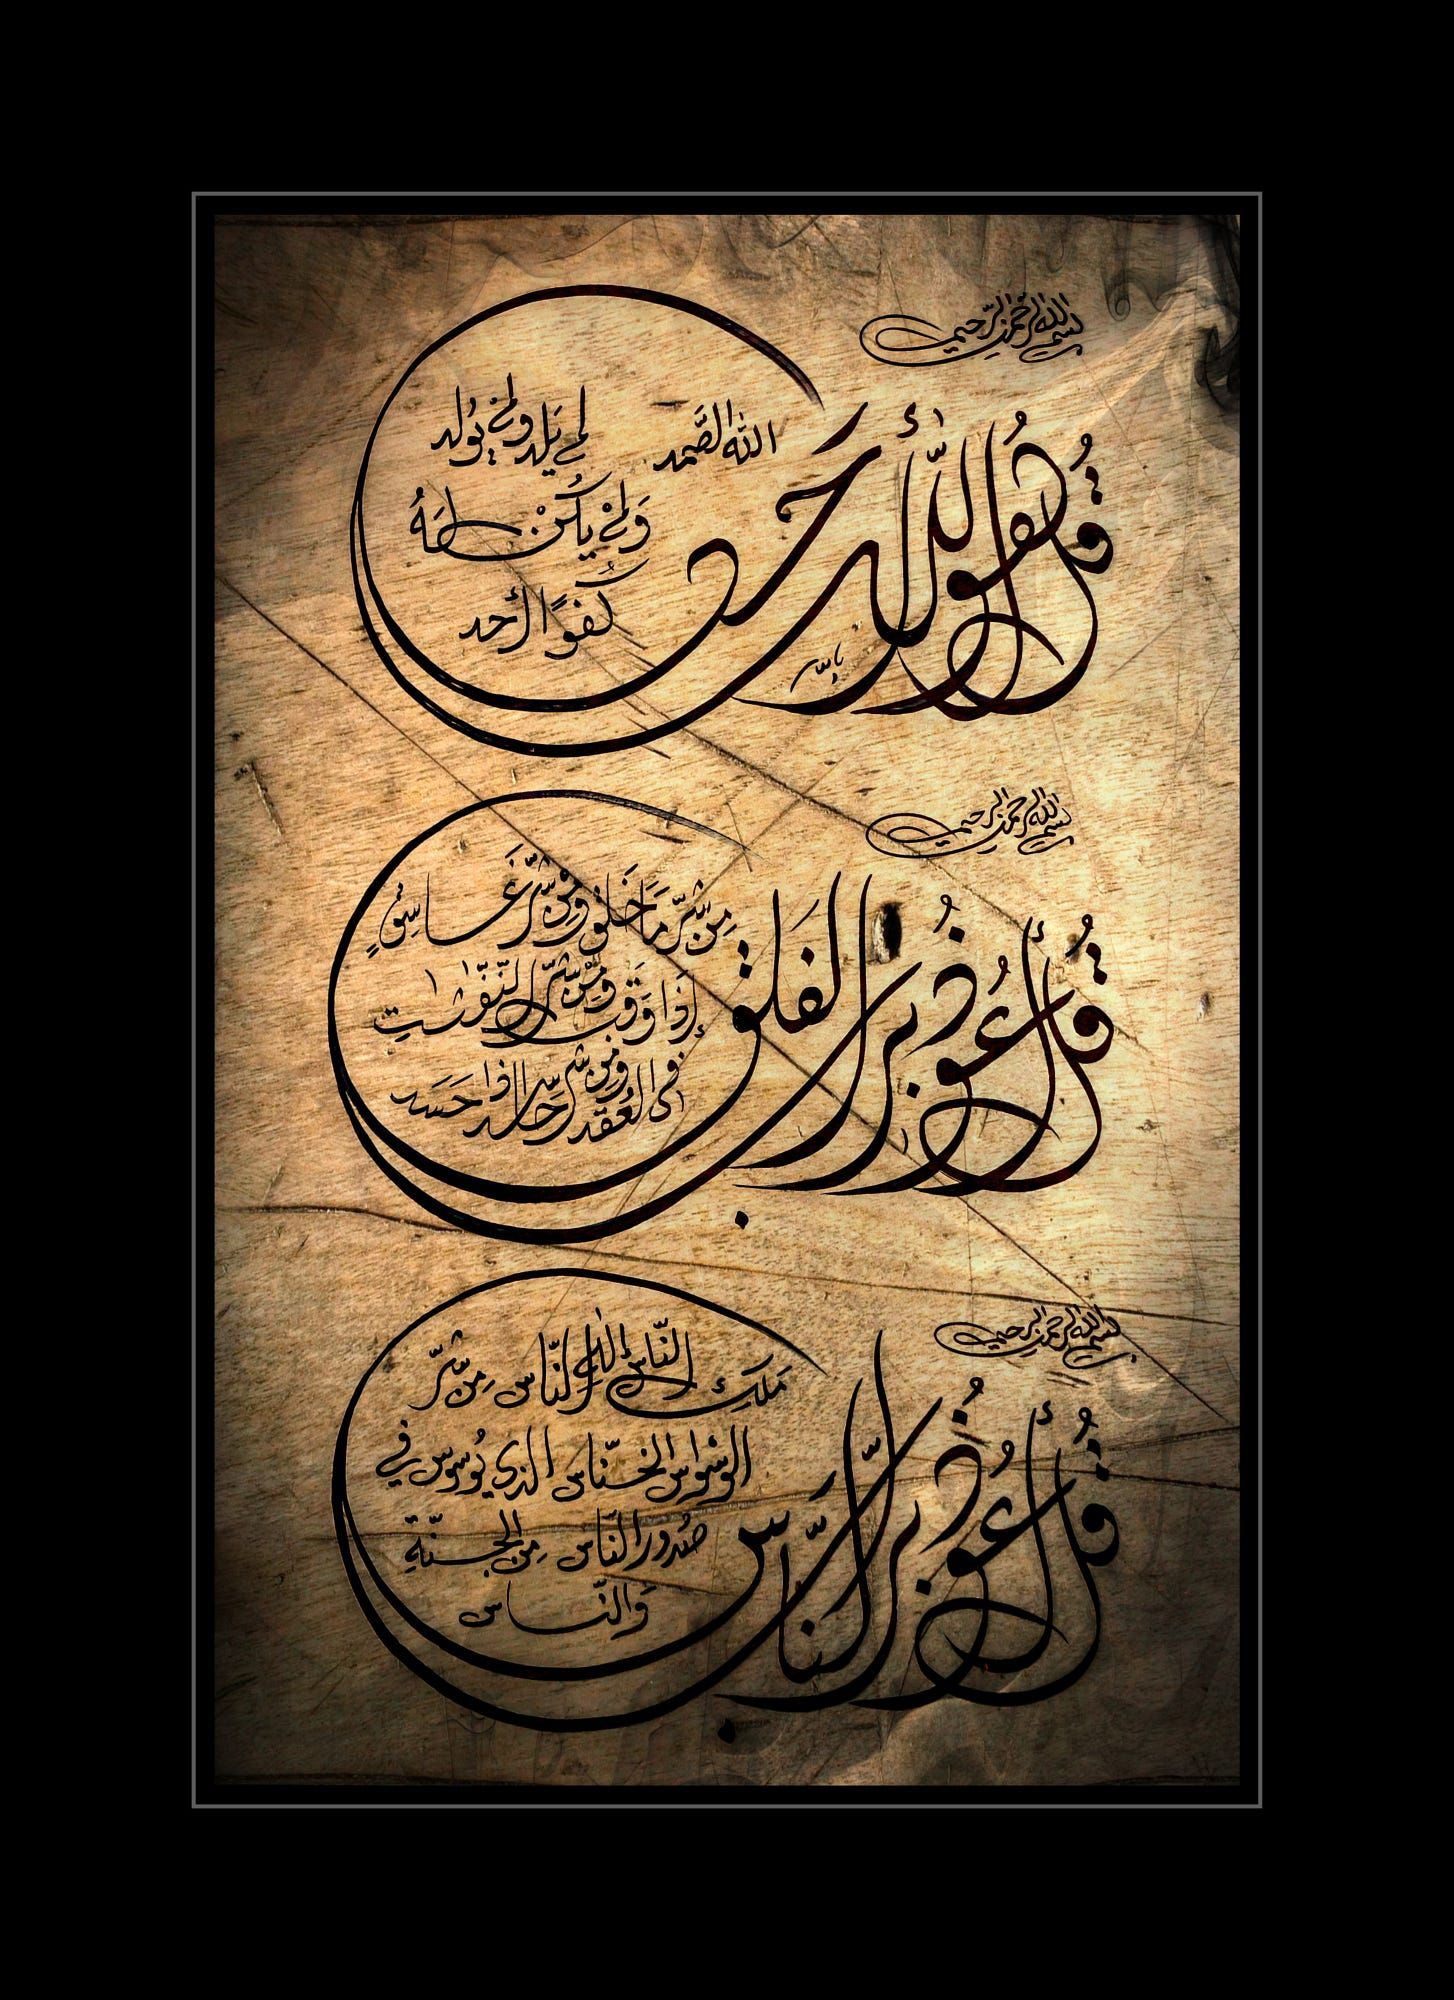 Protection Surahs from the Quran by W Christian Art